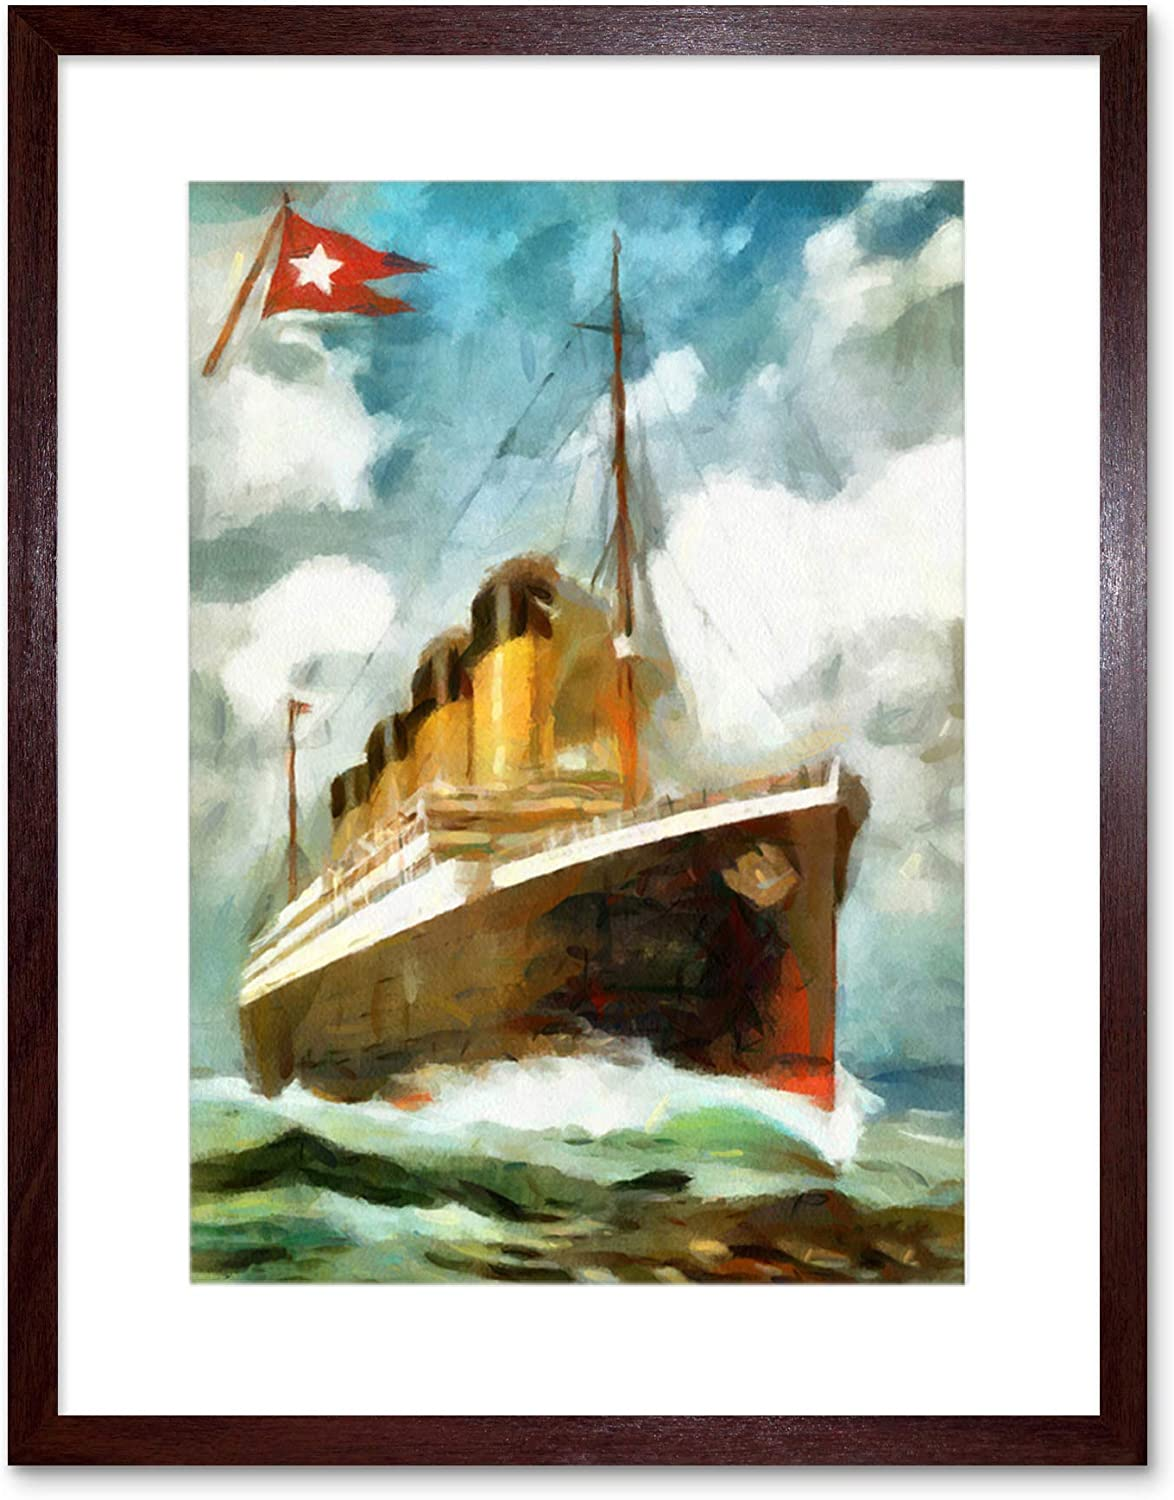 Framed Picture Print Wall Art Titanic 30x20 Inch Canvas